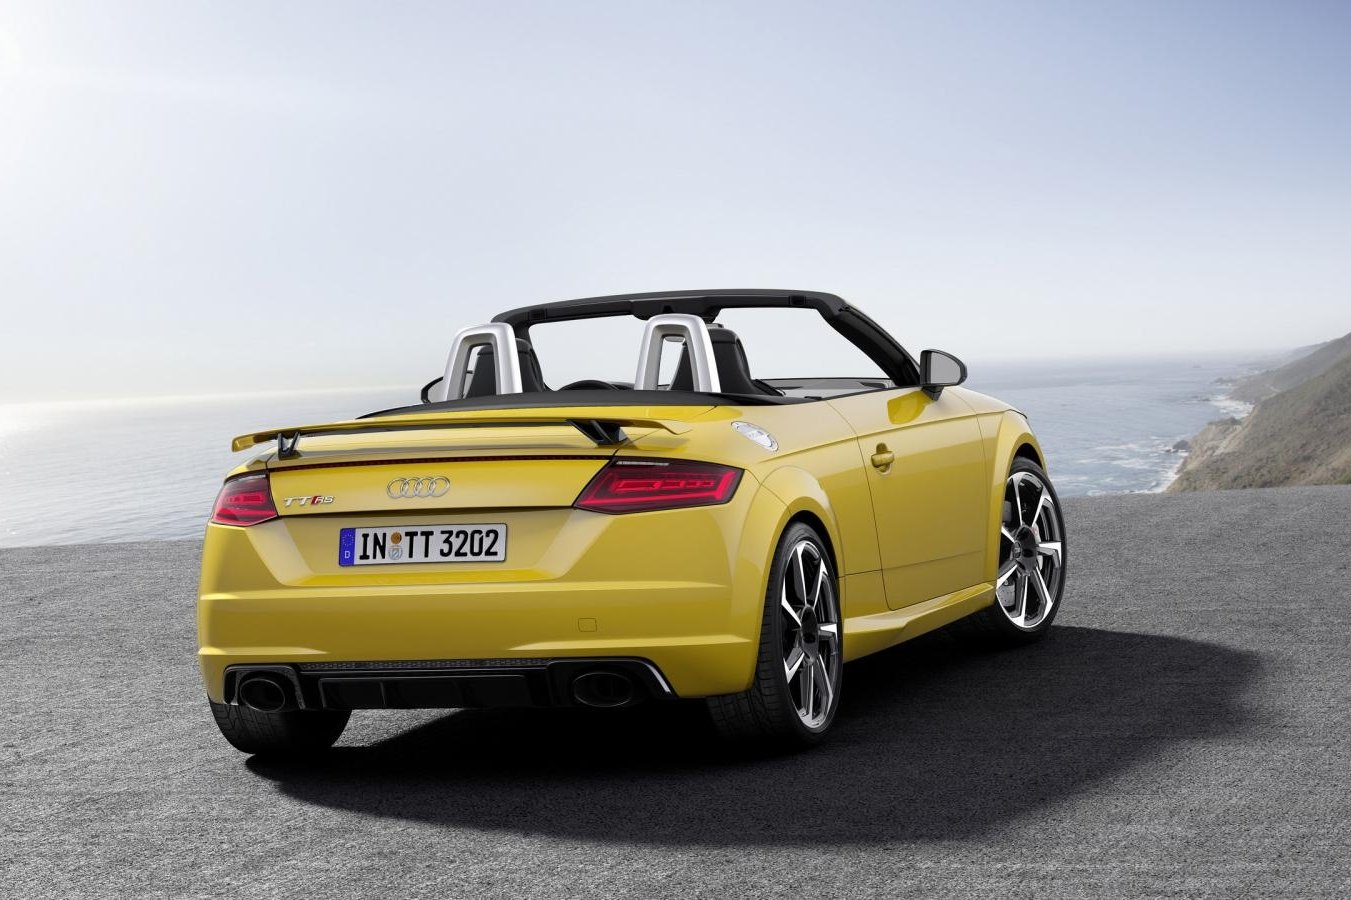 Audi TT RS Quattro Coupe Roadster rood geel 2017 23